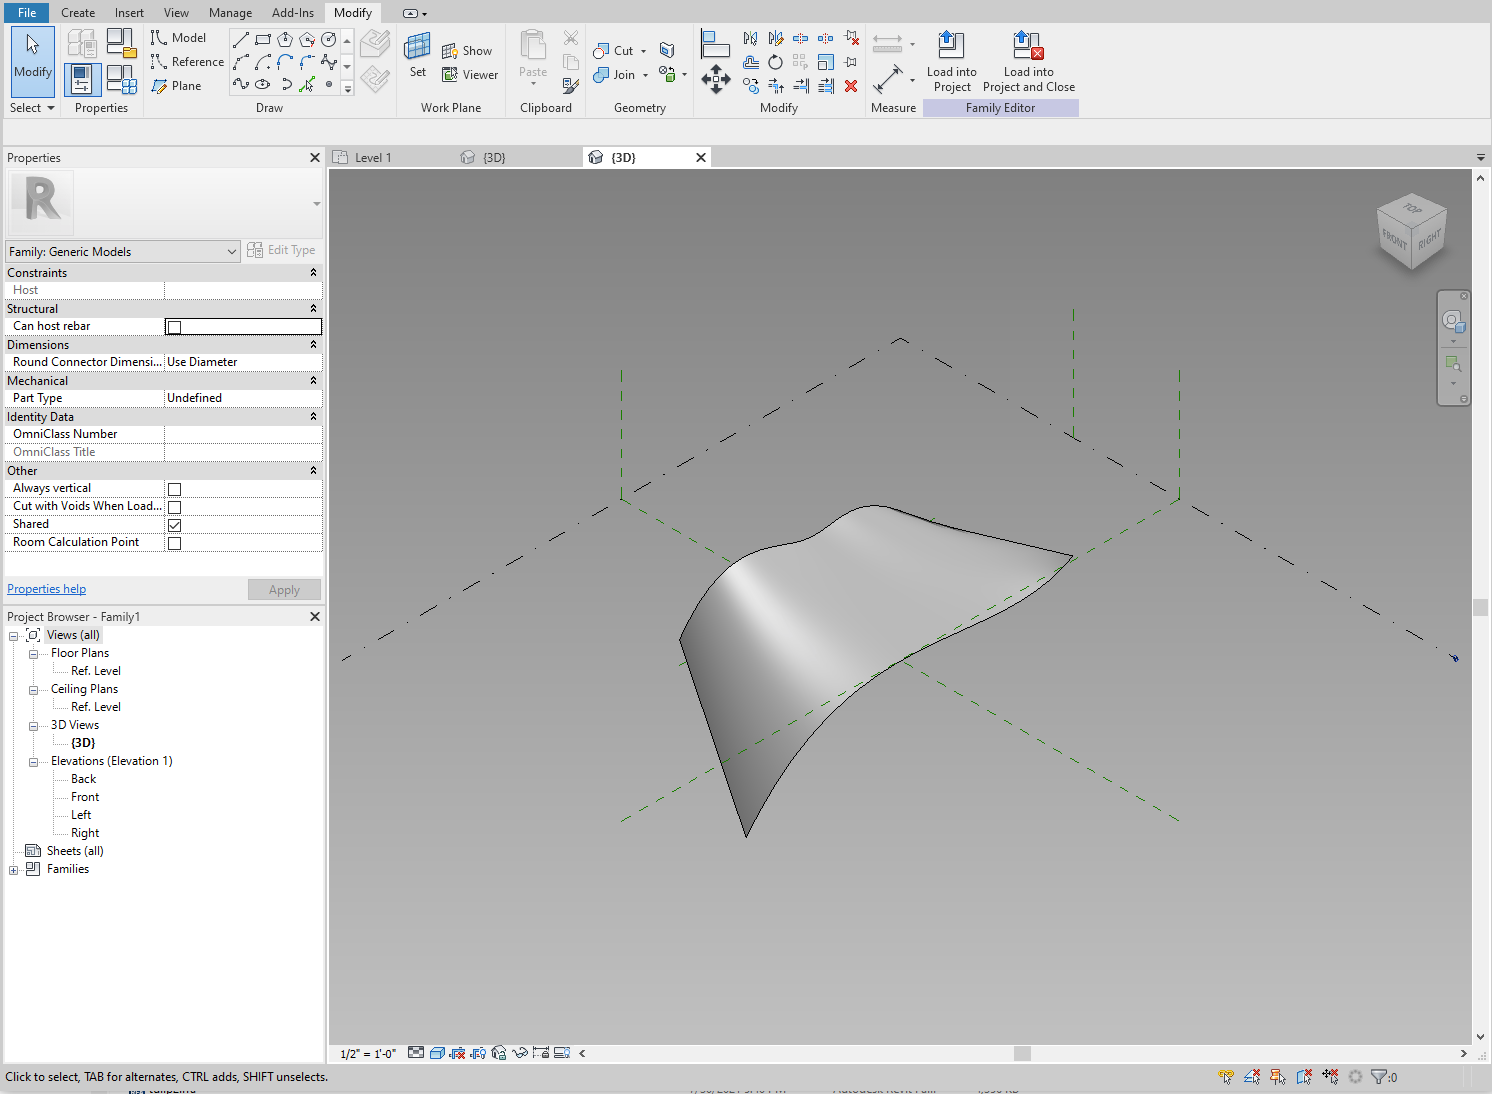 Creating a form from the two splines.